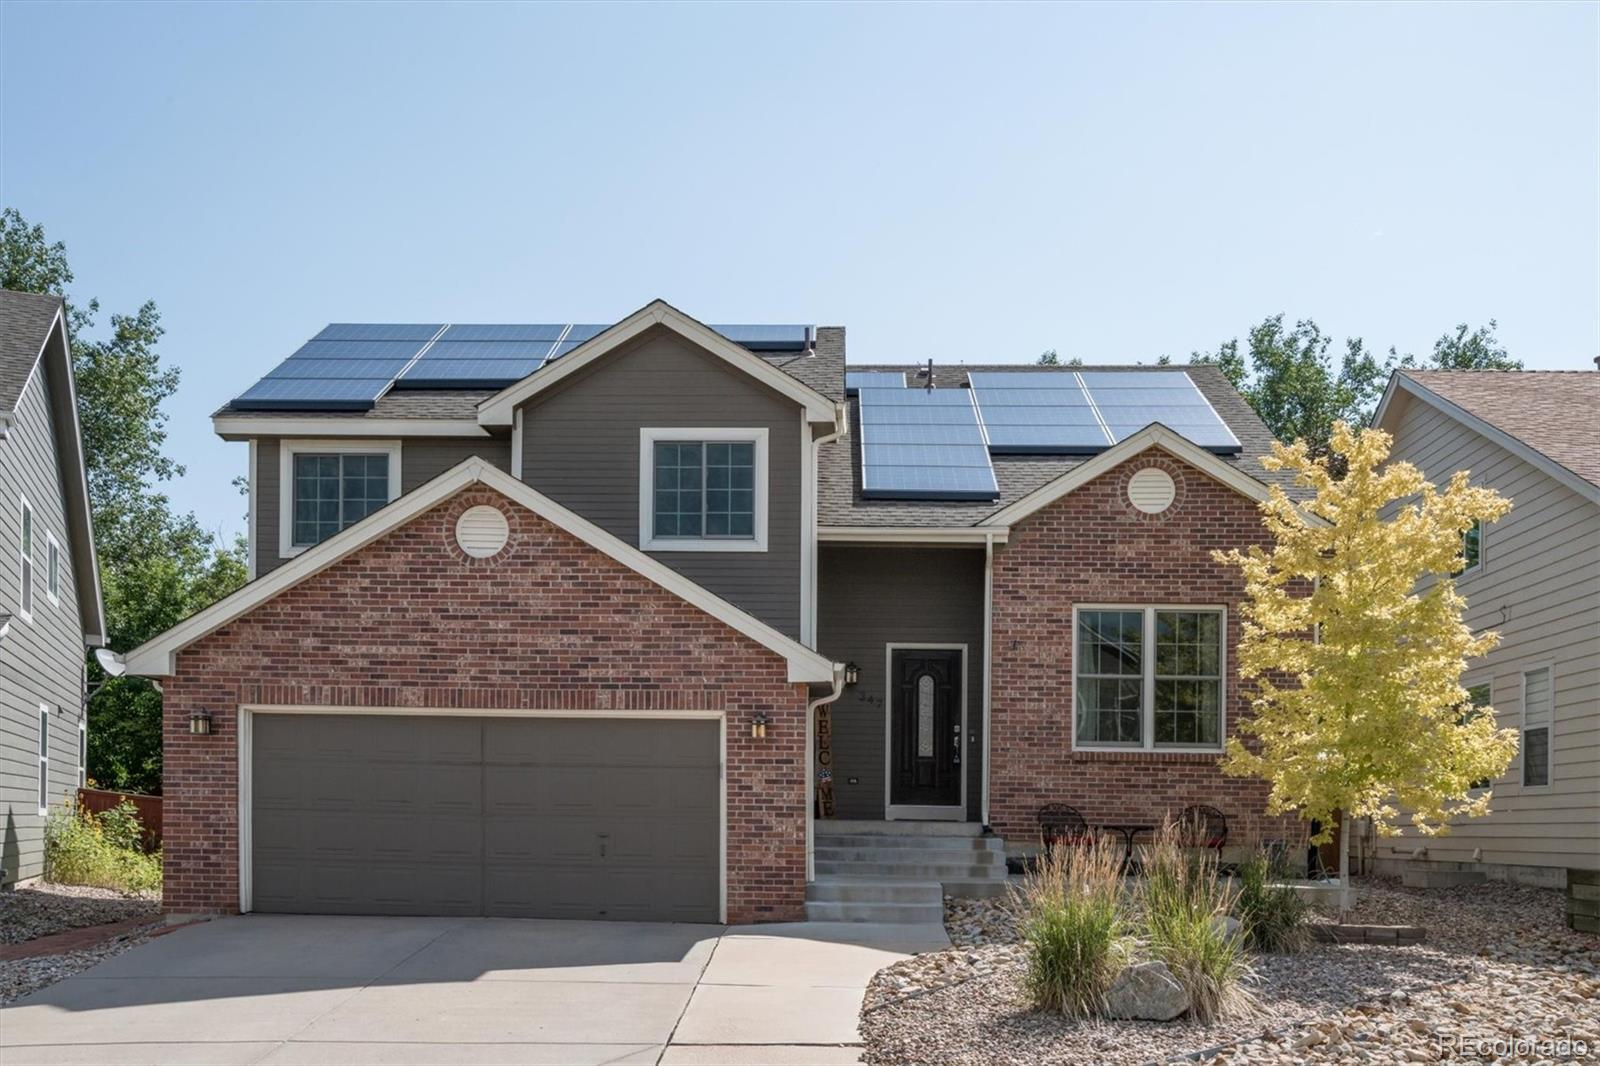 347 Wessex Circle, Highlands Ranch, CO 80126 - #: 6425362